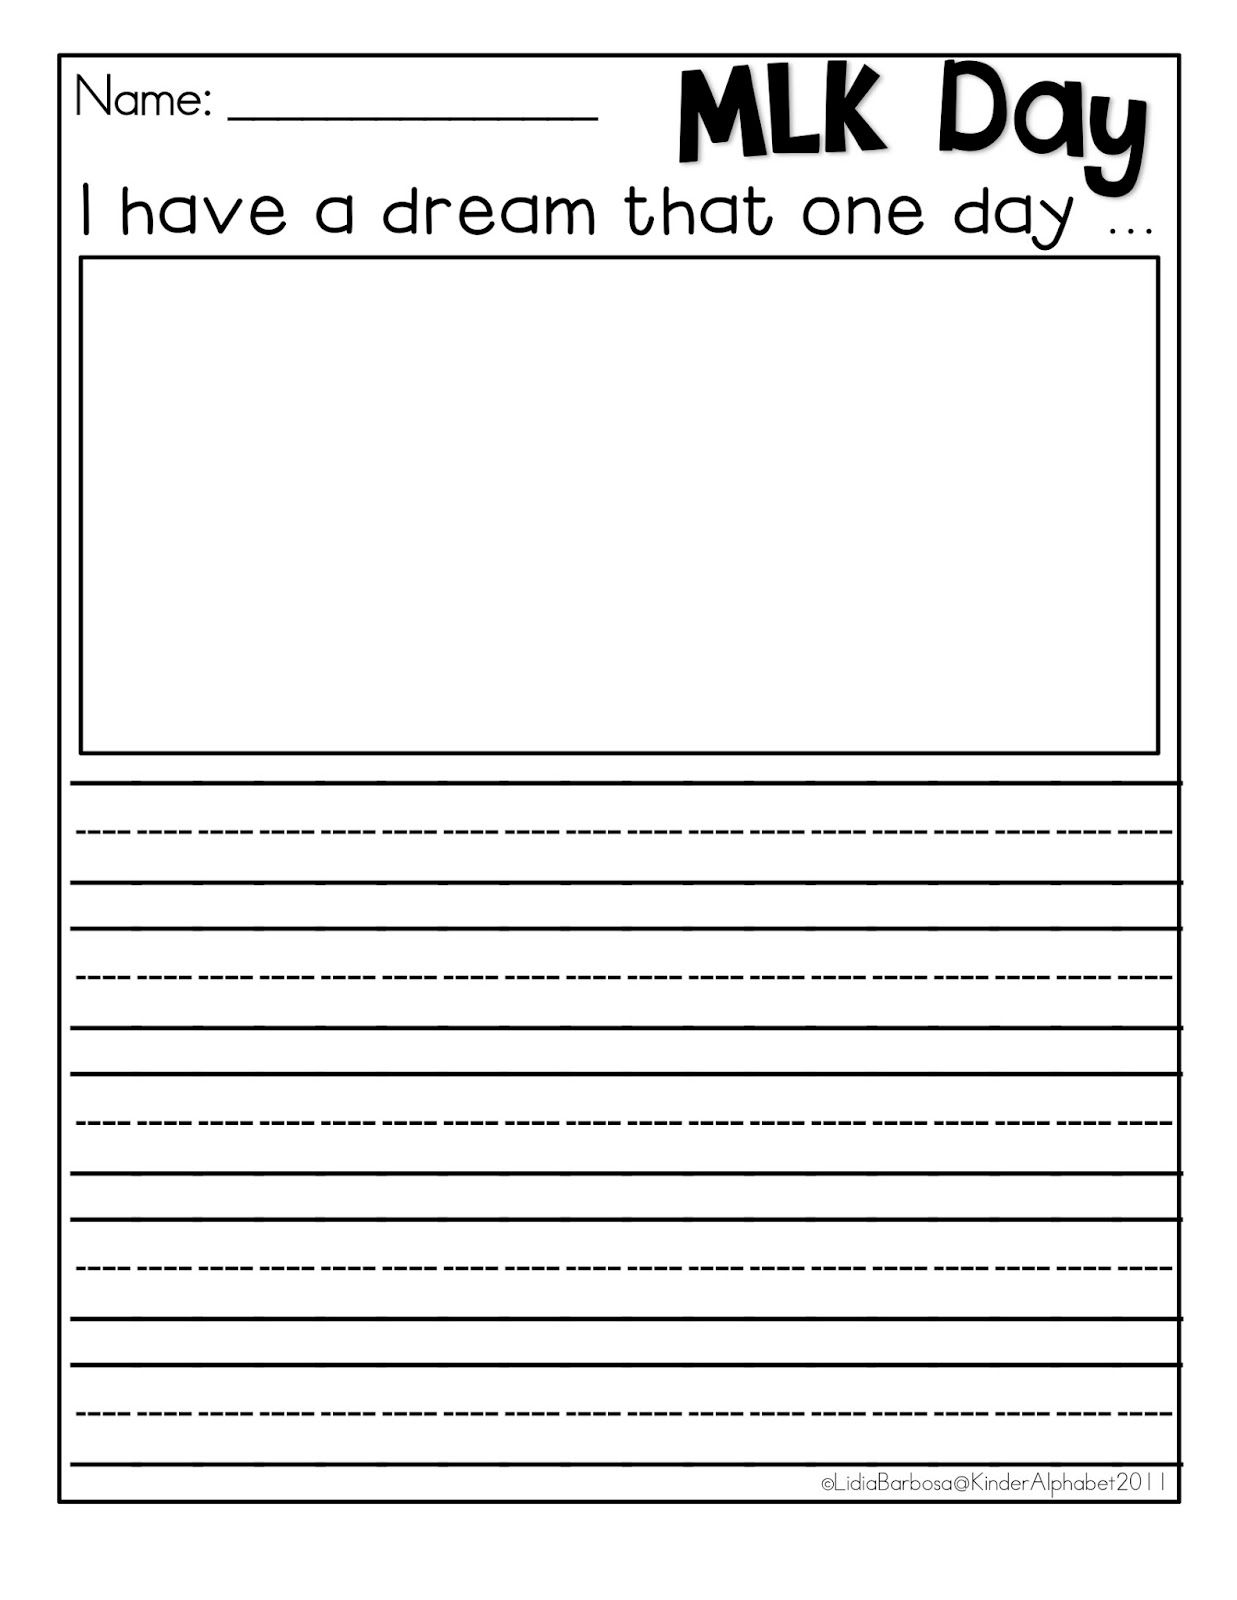 i have a dream too worksheet delibertad 10 images about mlk activities writing papers and i have a dream